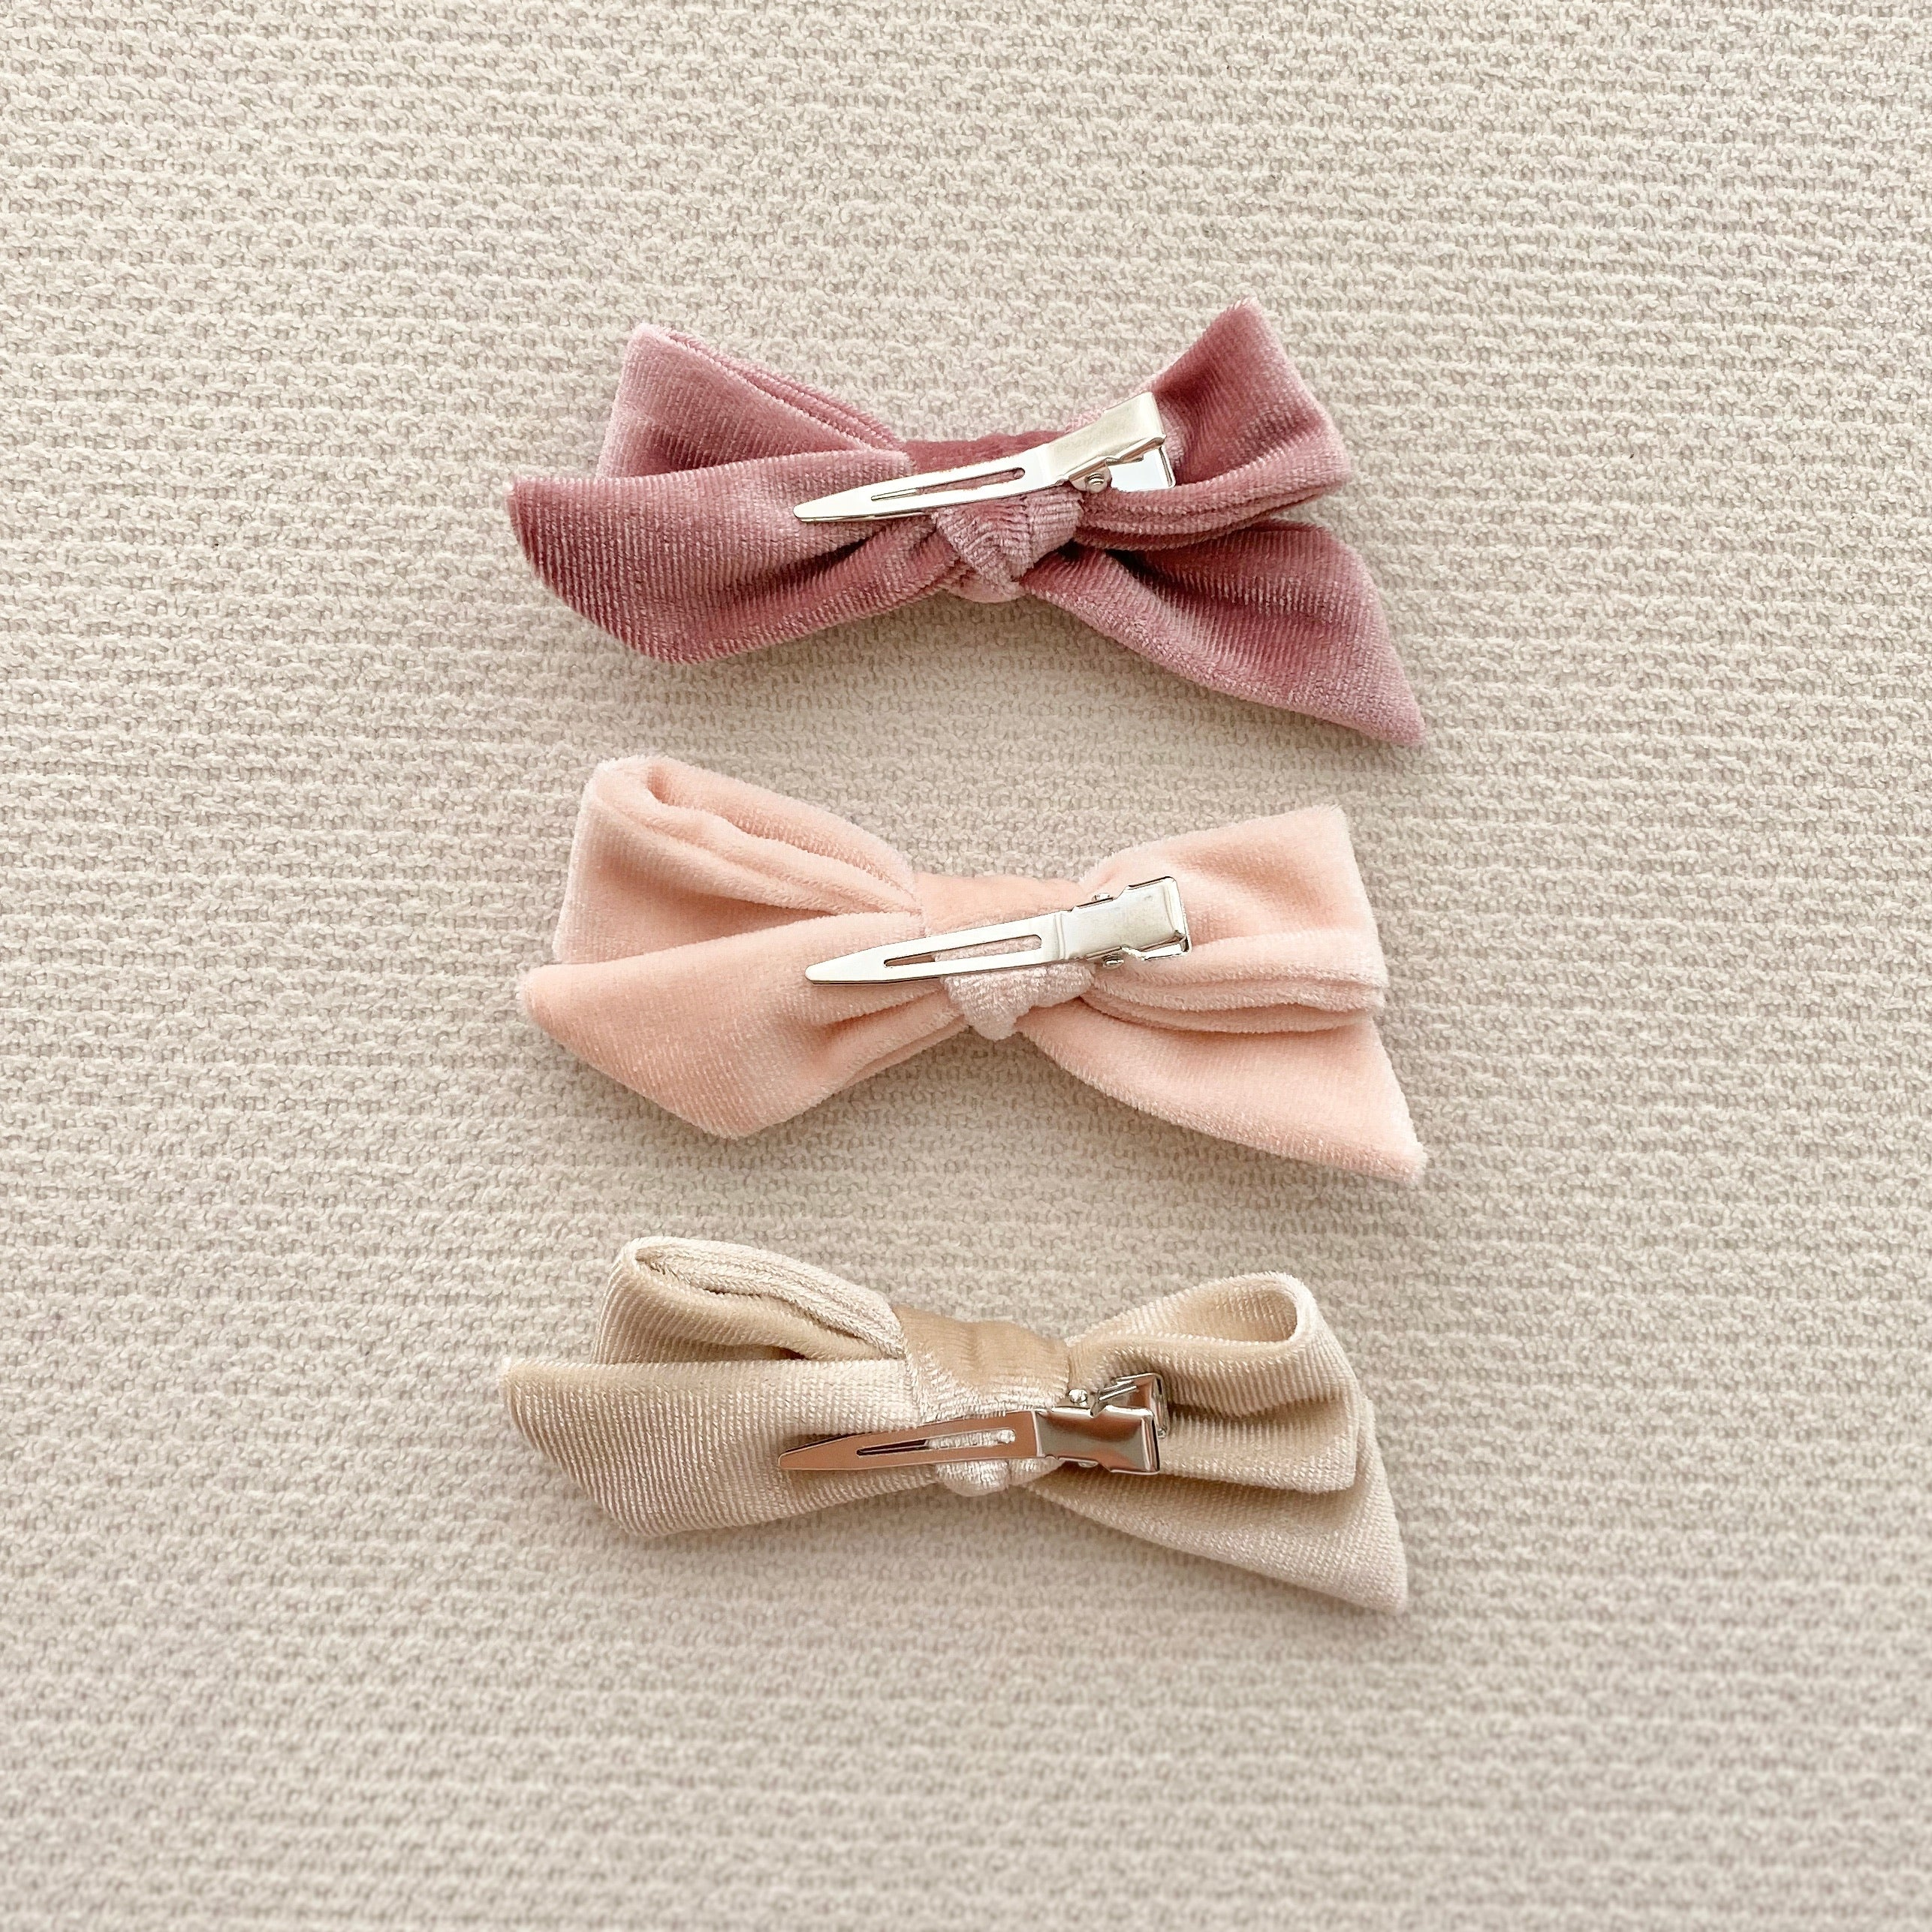 Velveteen Bow Hair Clips in Champagne (Pack of 3)